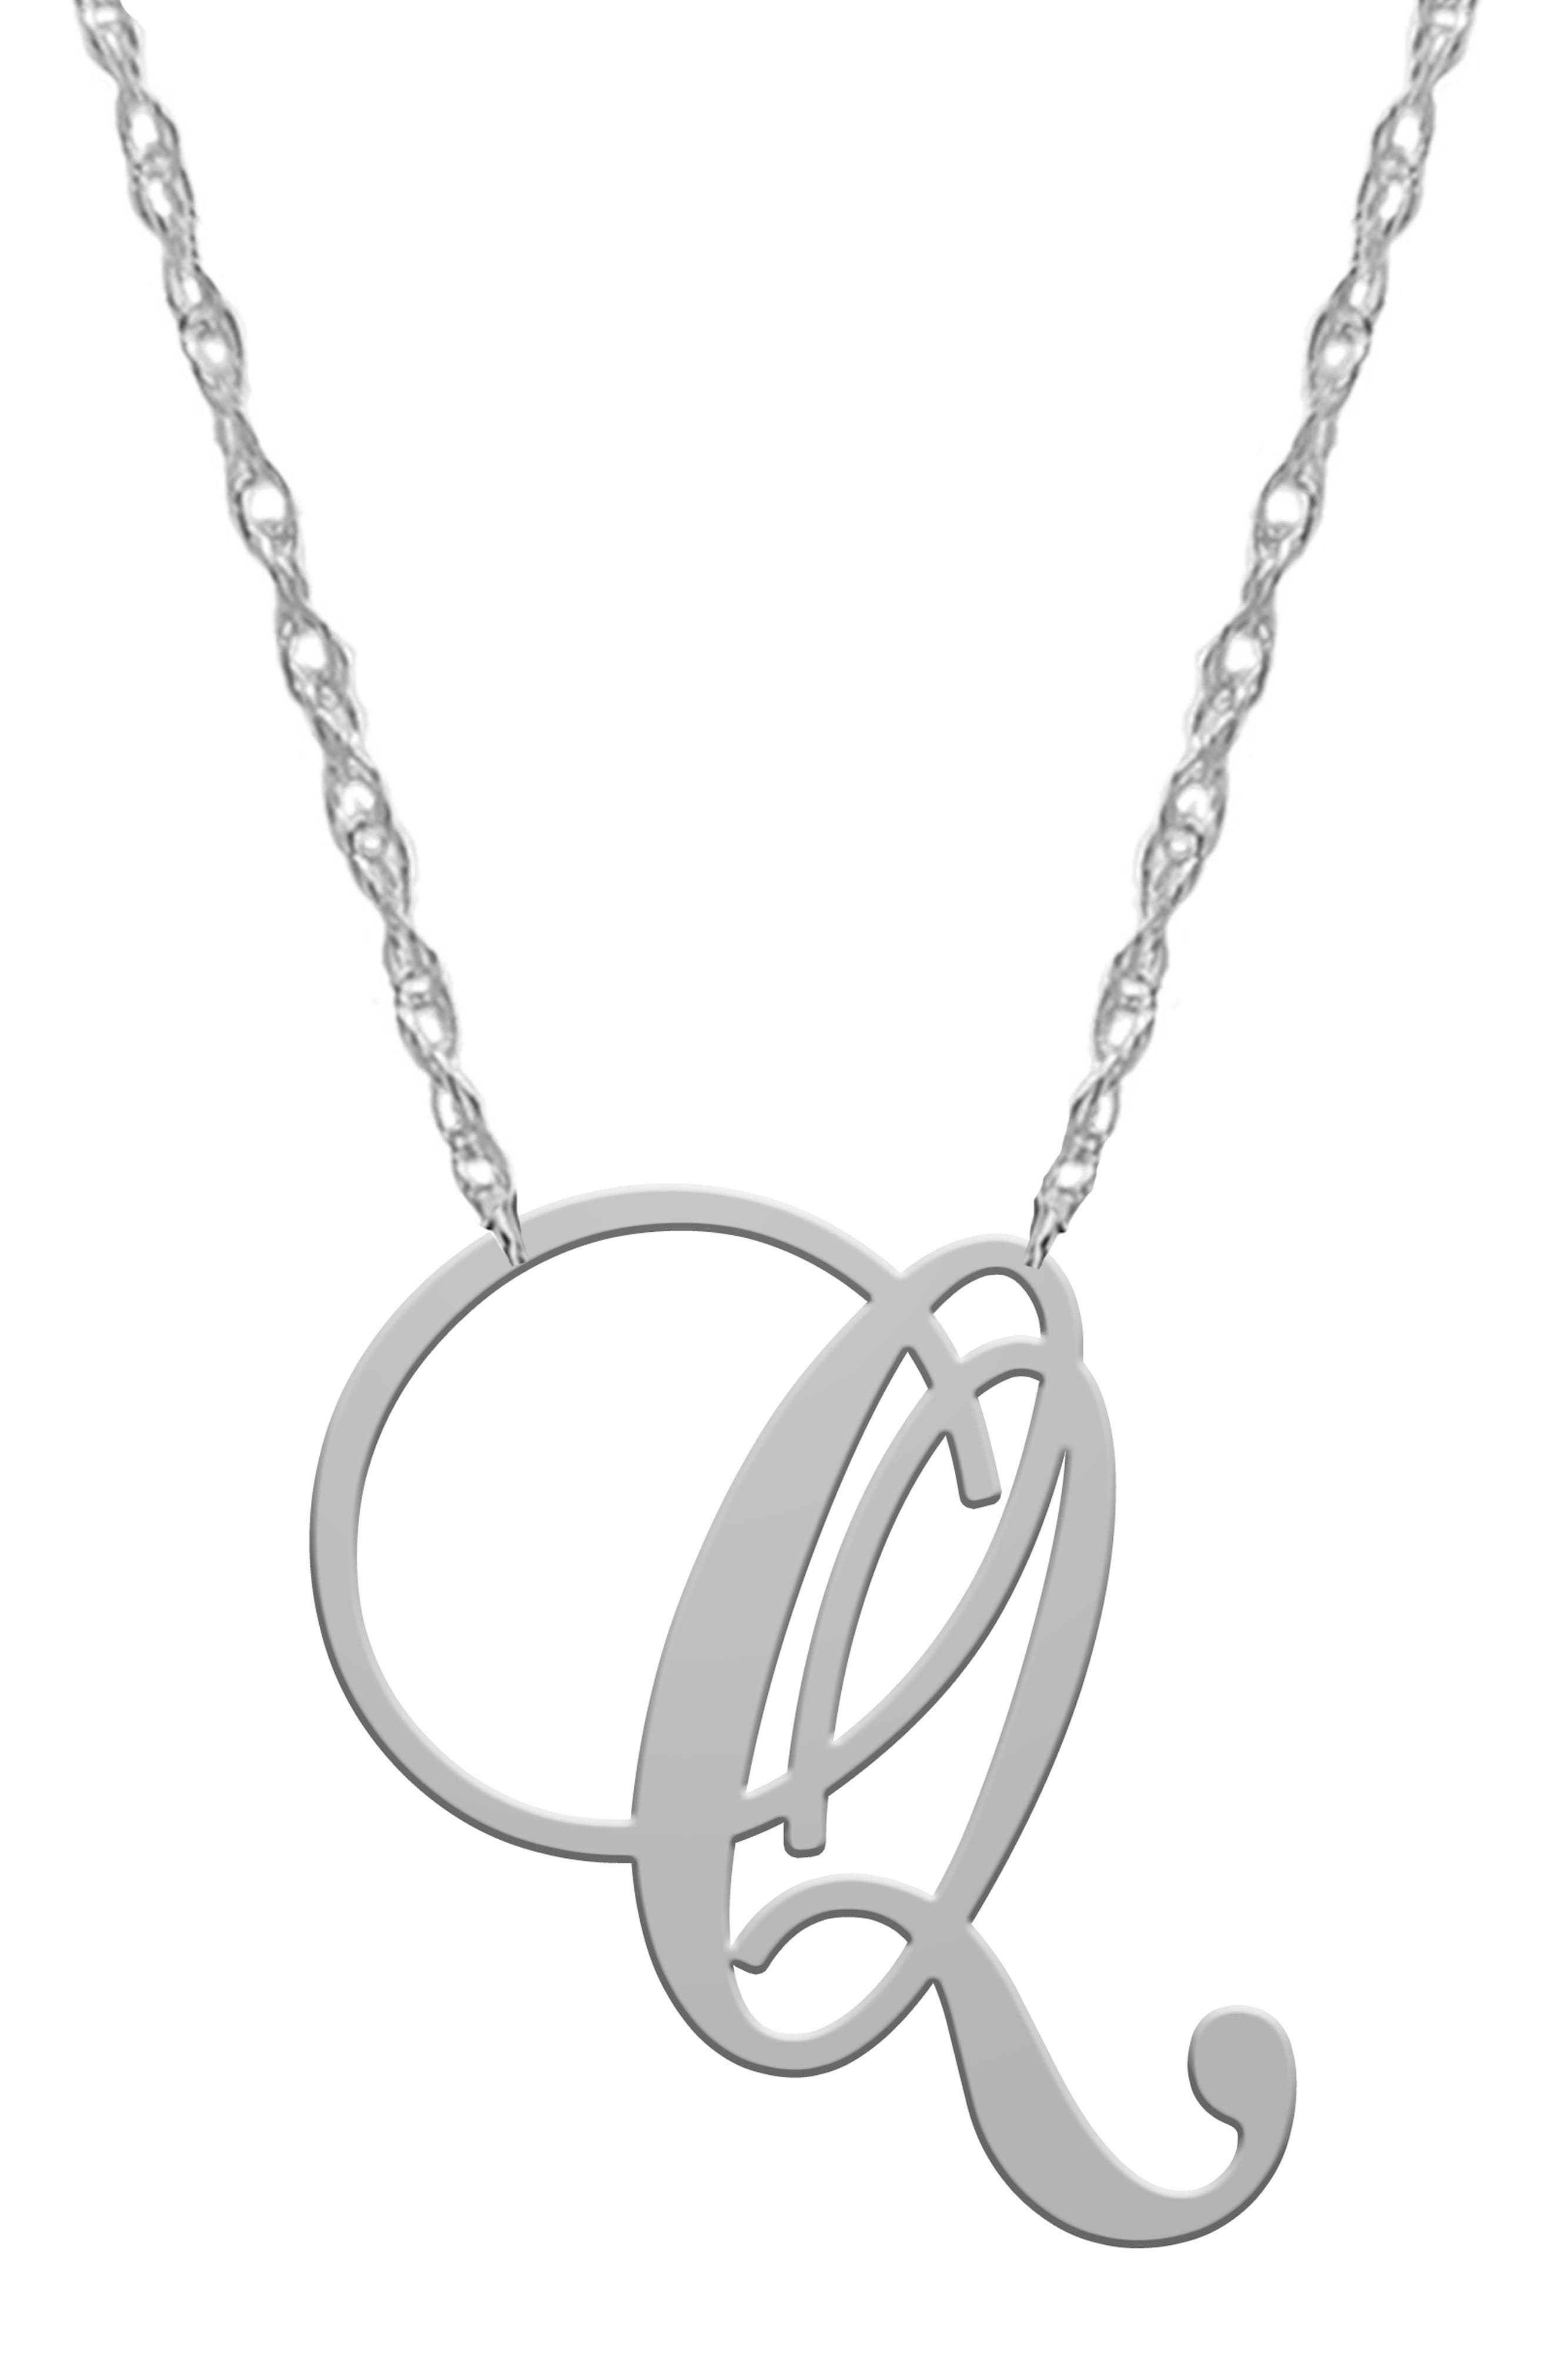 Opt for classy personalization with this polished sterling-silver necklace featuring an ornate cursive letter stationed on an adjustable rope chain. Style Name: Jane Basch Designs Swirly Initial Pendant Necklace. Style Number: 5863548. Available in stores.